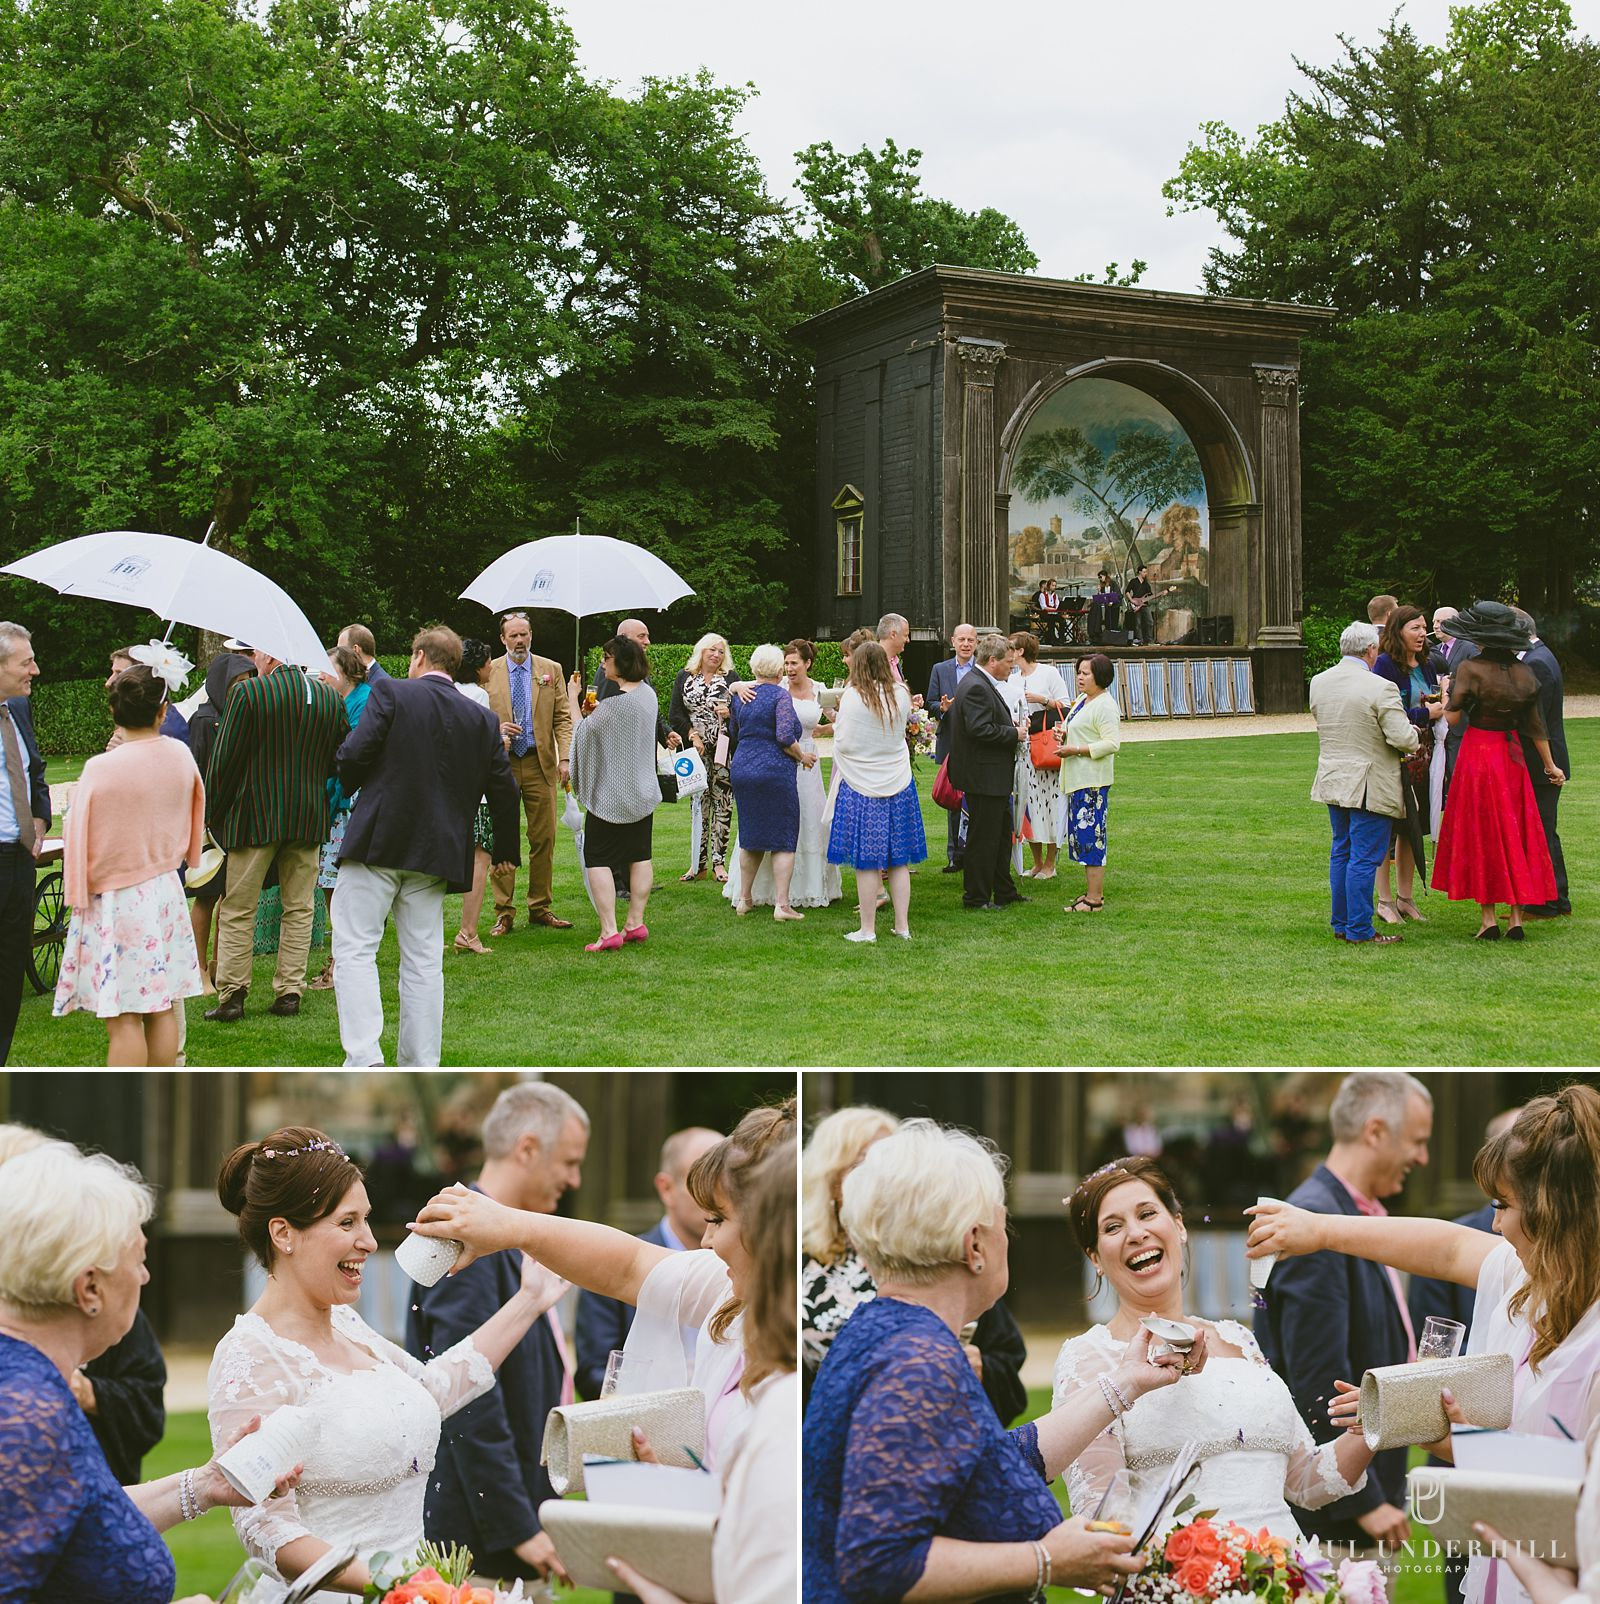 Wedding reception at Larmer Tree gardens